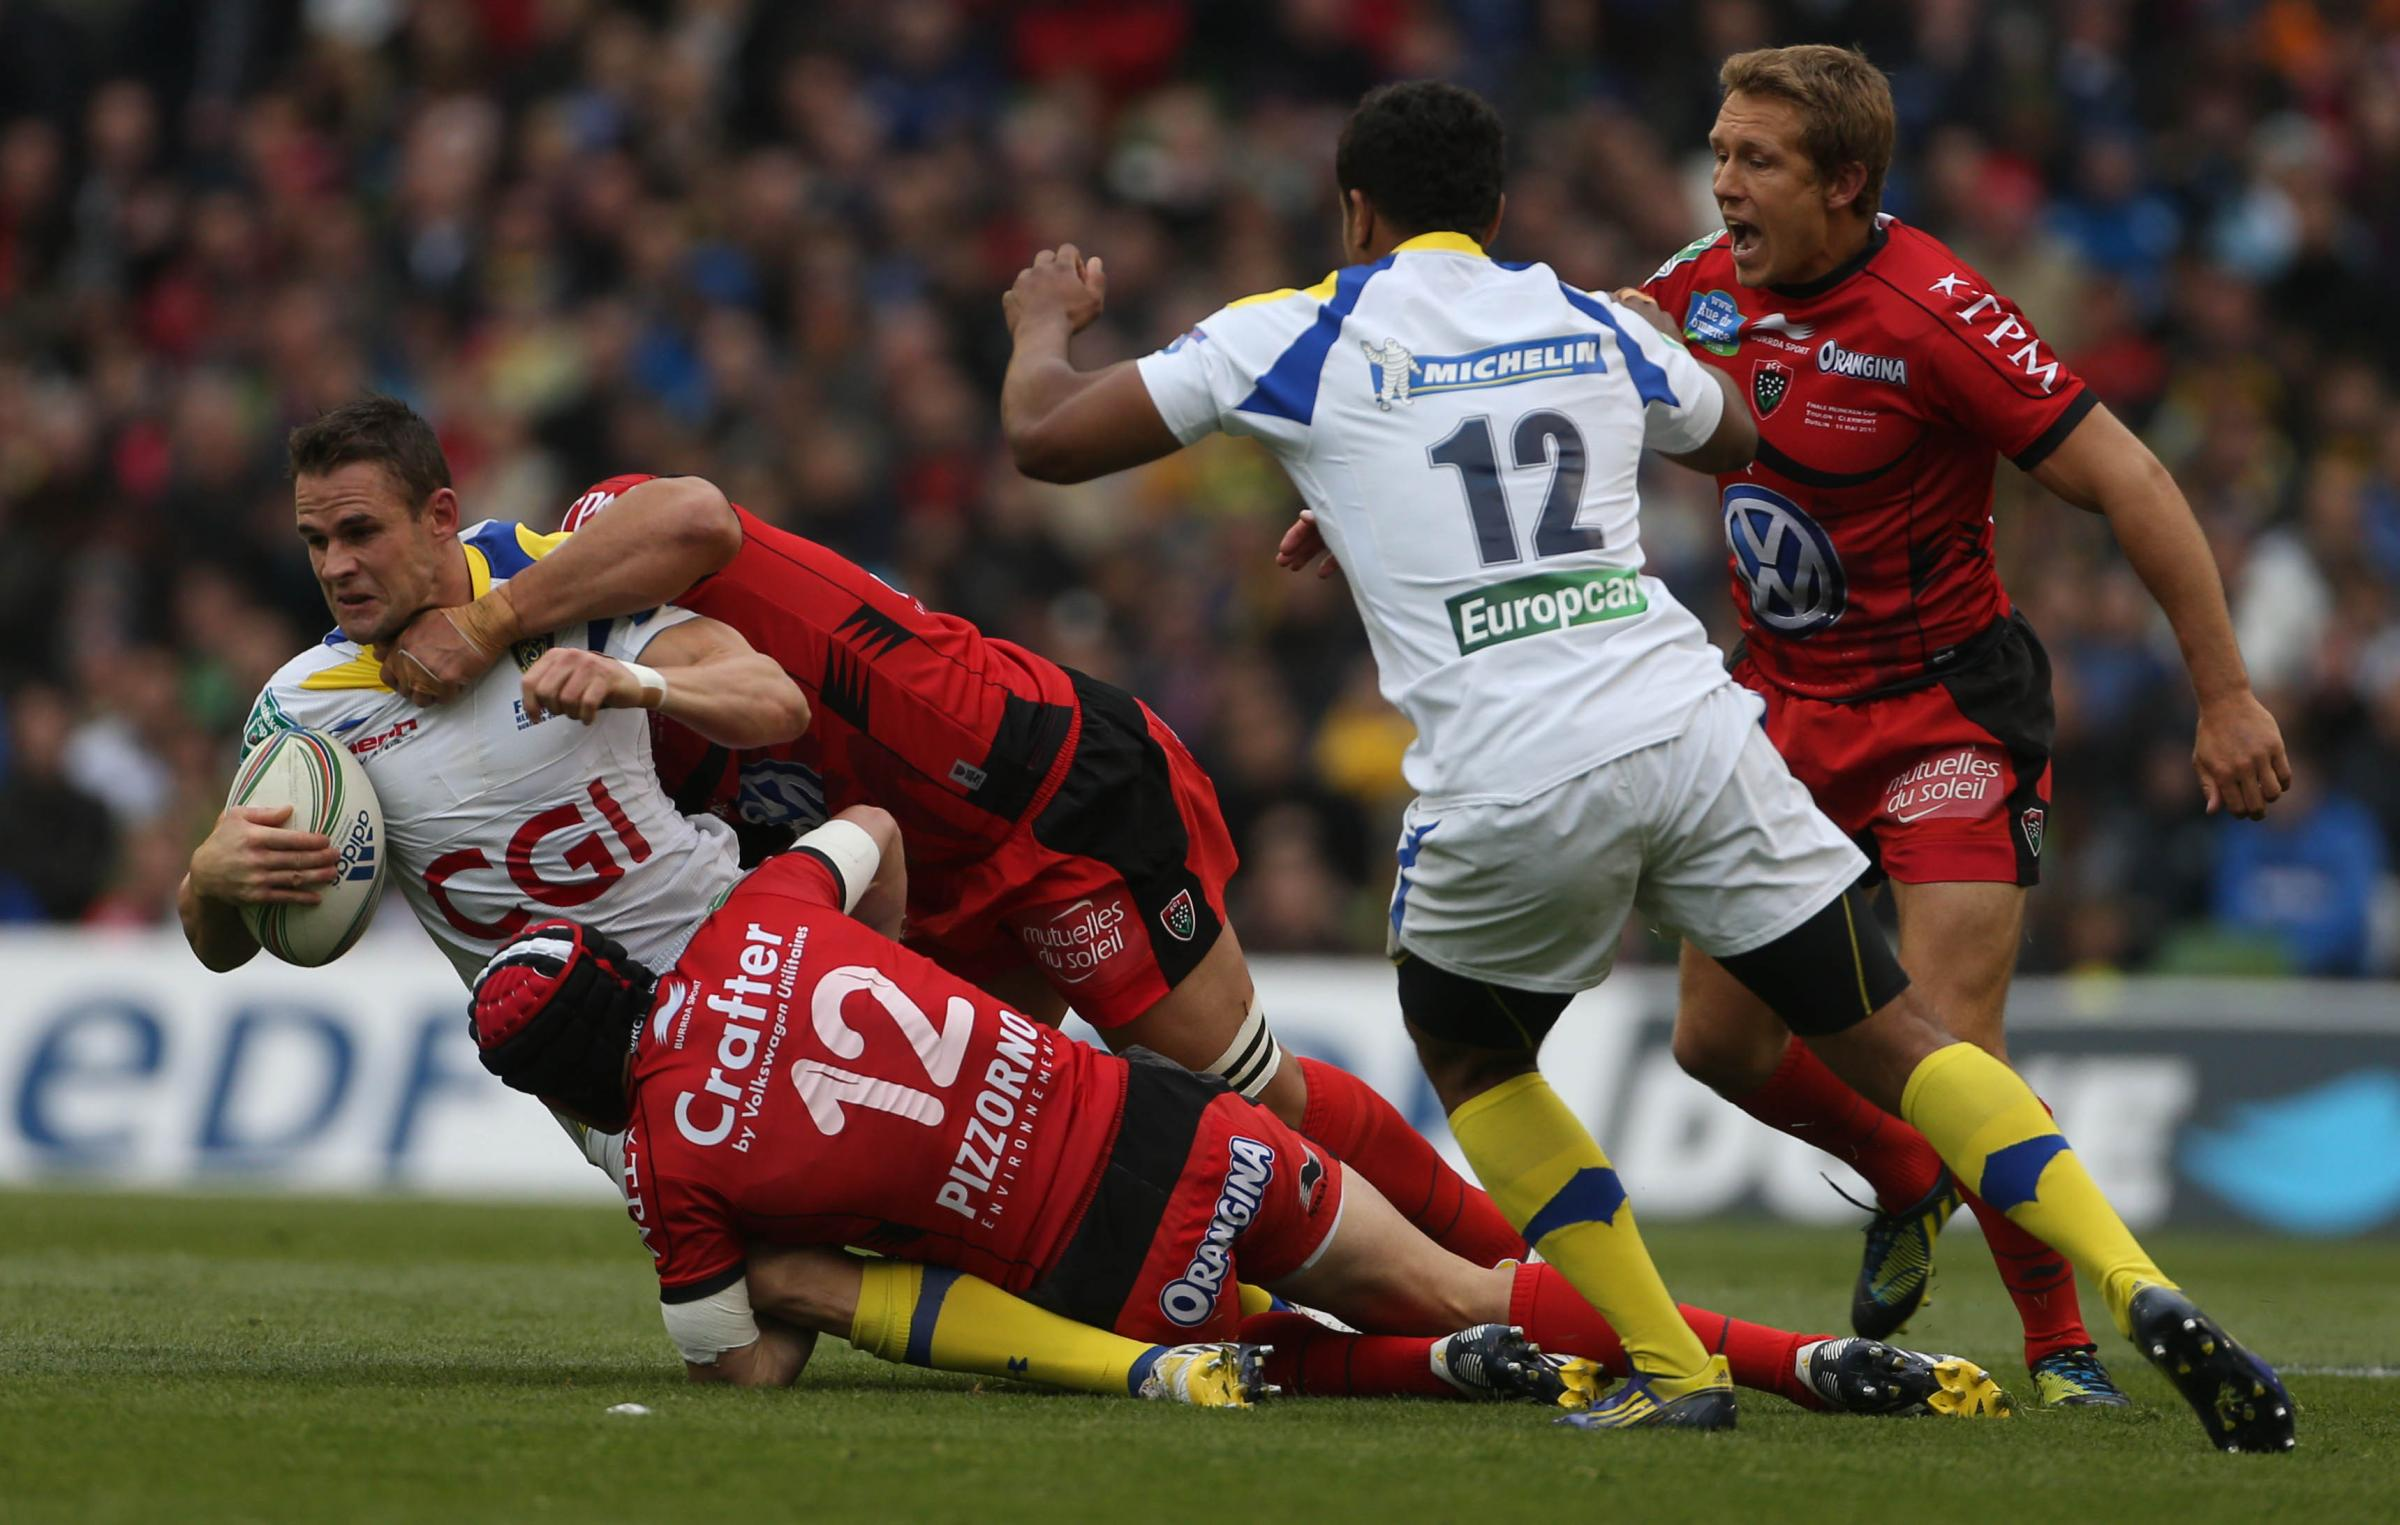 TOP PLAYER: Clermont Auvergne full-back Lee Byrne